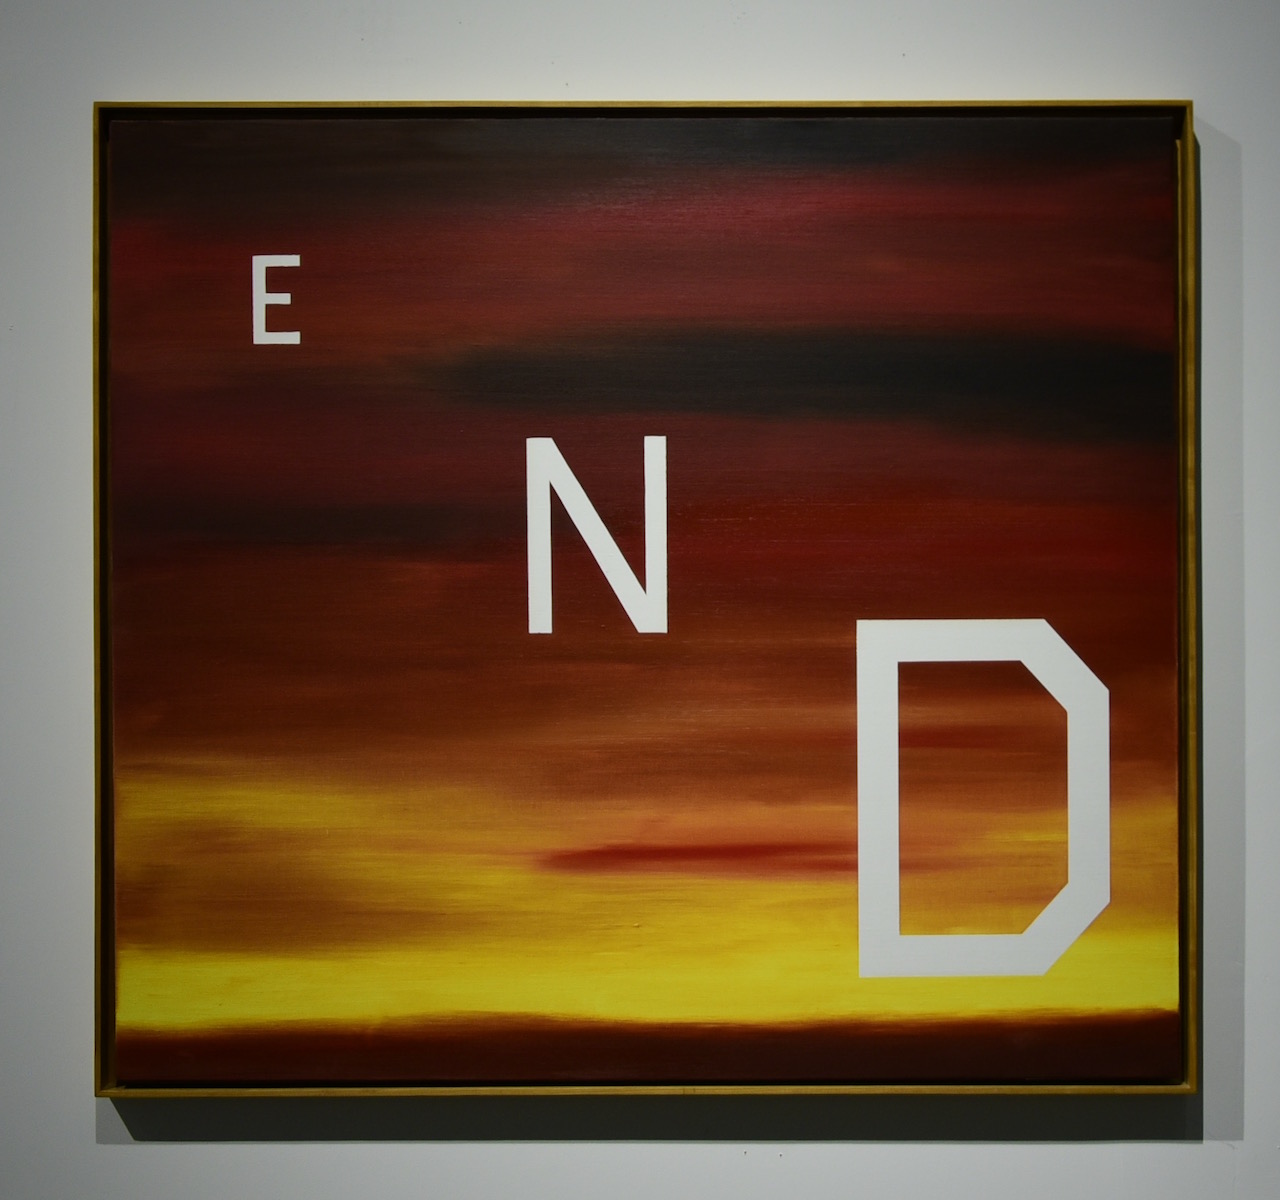 """Ed Ruscha, """"End"""" (1983), from 'Made in California' at Mana Wynwood"""